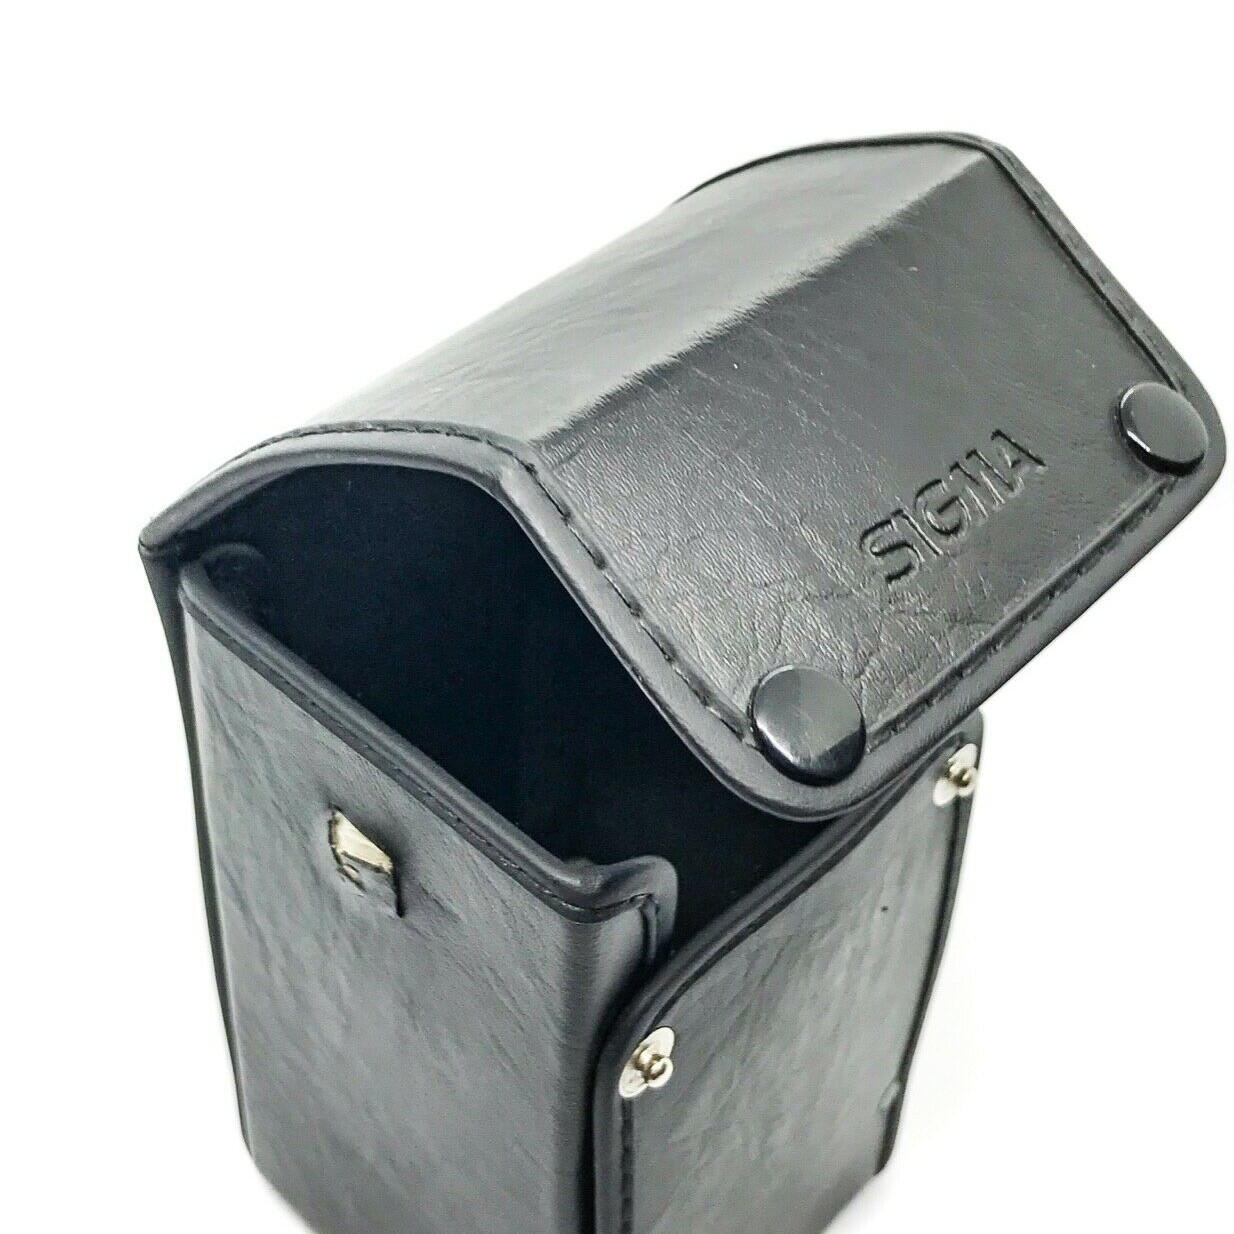 Sigma leather lens case on white background